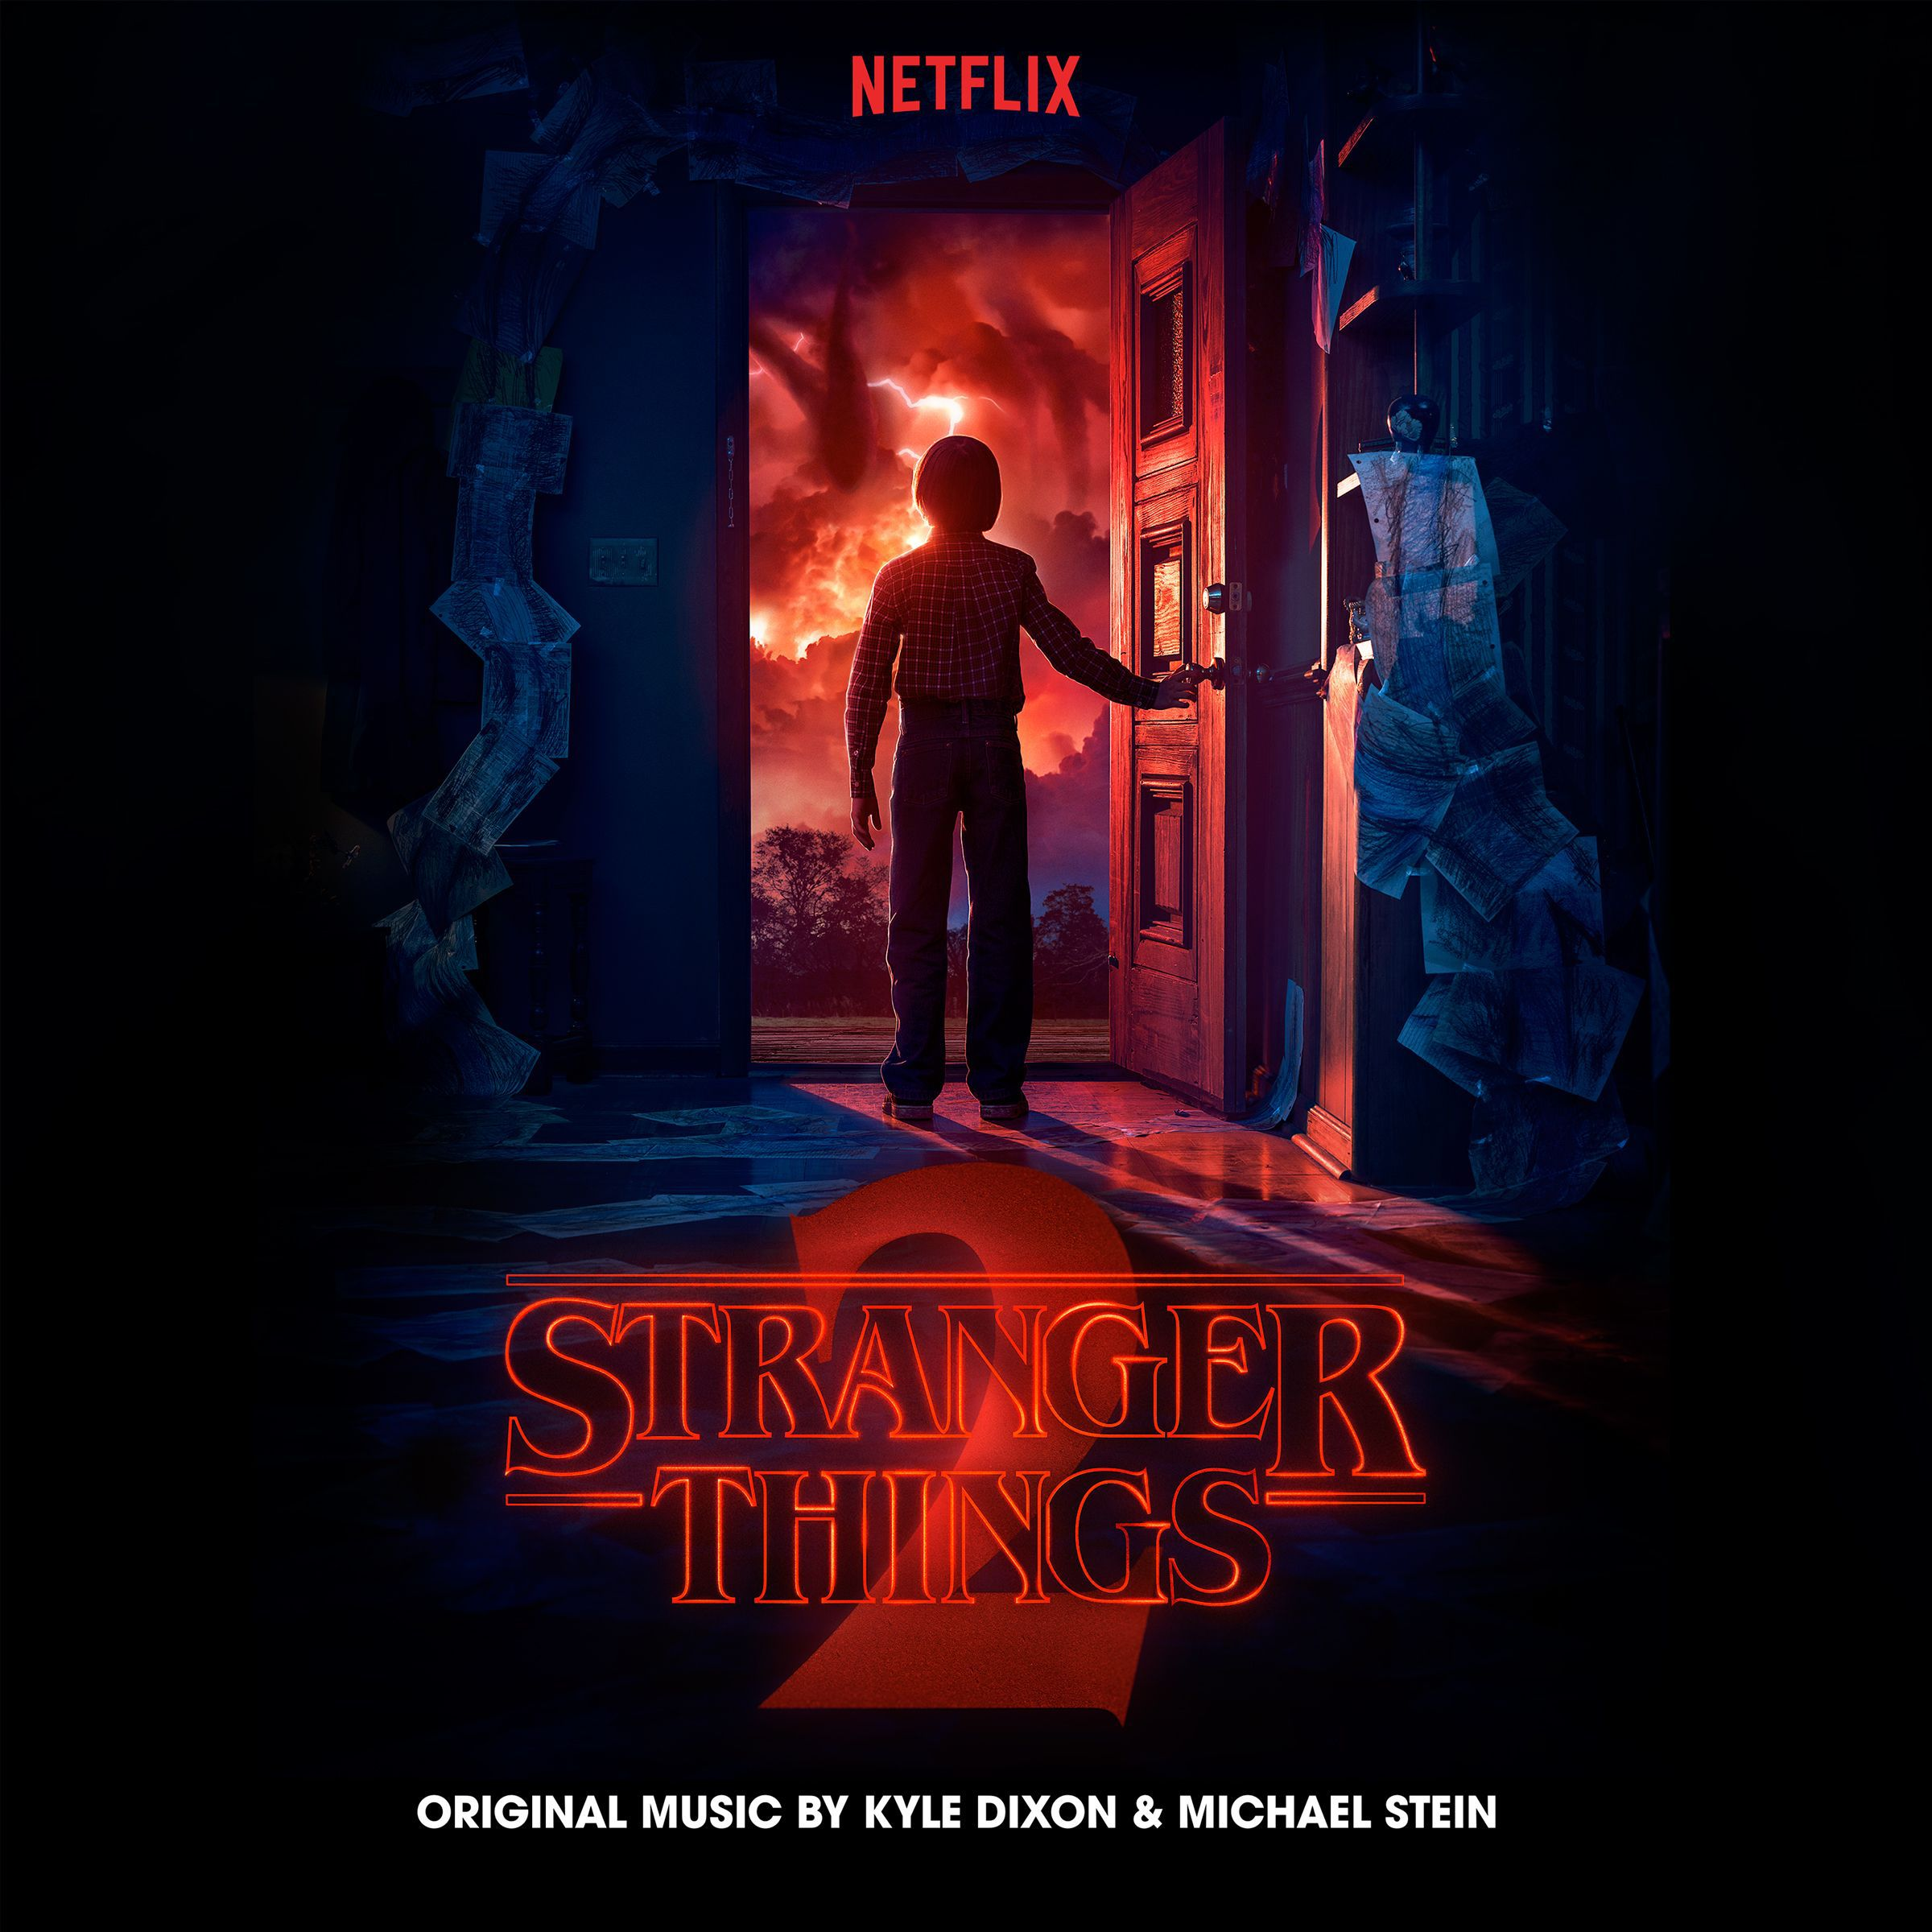 stranger things 2 Top 50 Albums of 2017